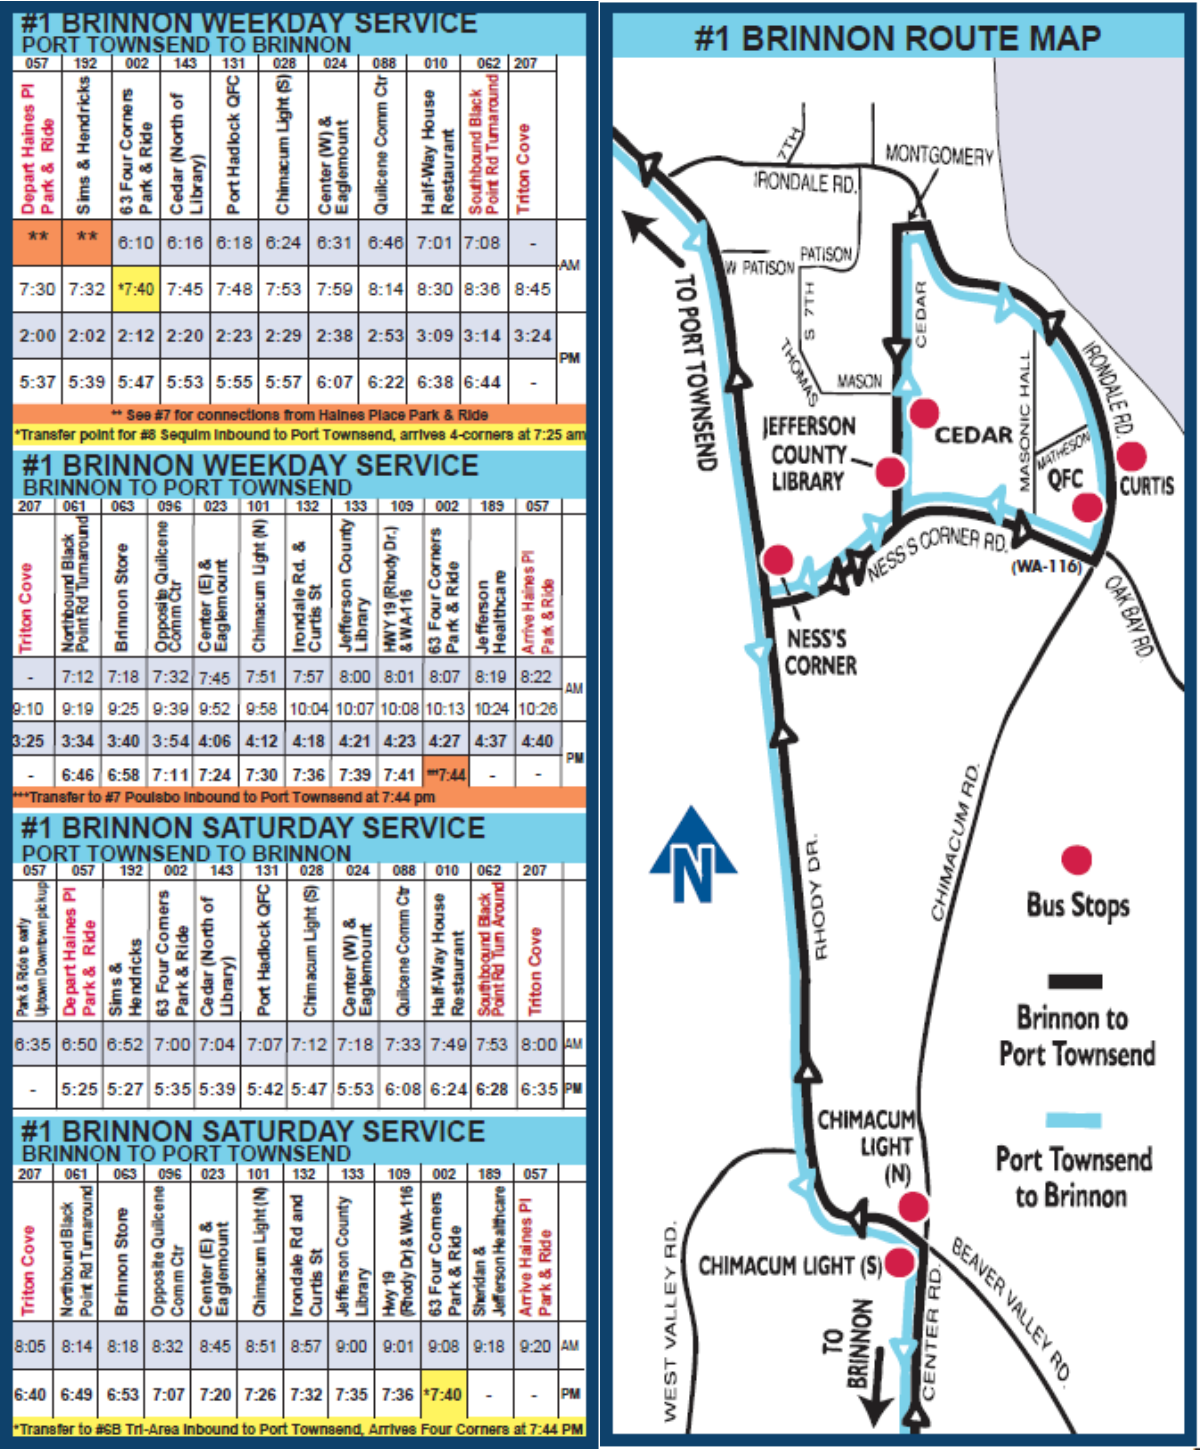 Route Schedules & Connection Schedules « Jefferson Transit on the mbta map, regional rail map, walk map, the tide light rail map, trains map, cafeteria map, mta map, transit map, metrobus map, street map, binghamton university parking map, nyc buses map, nyct map, service map, metro stop map, njtransit map, railway map, walking map, maglev map,